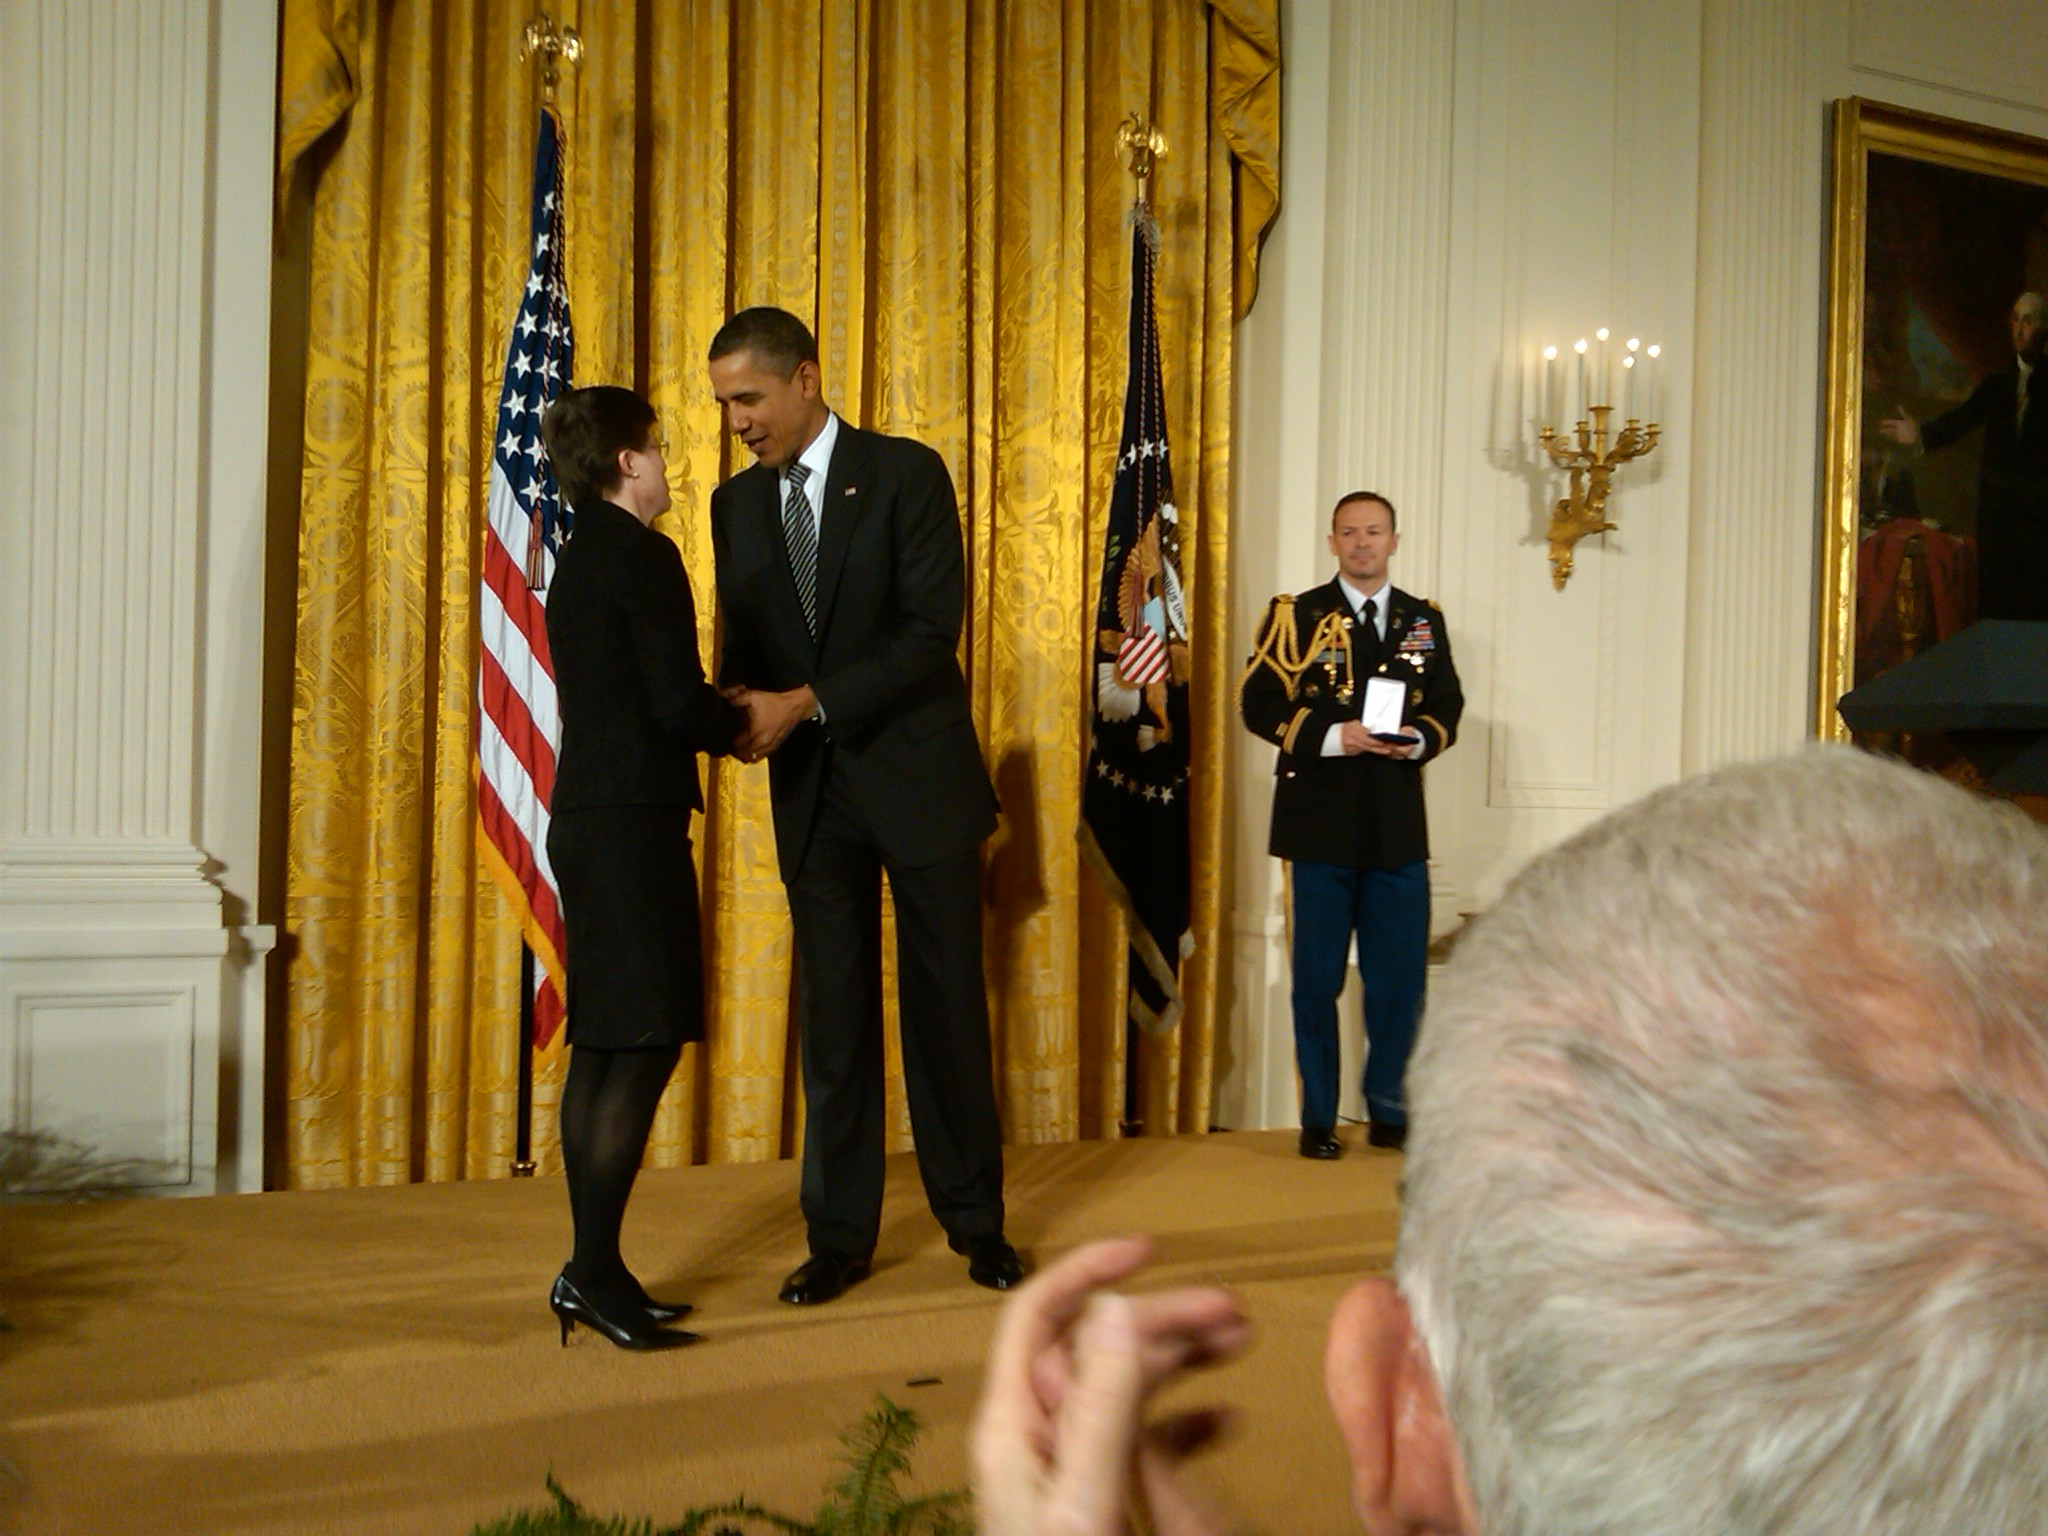 Dr. Cathy Gorn accepting the medal from Barack Obama, the president of the United States. 